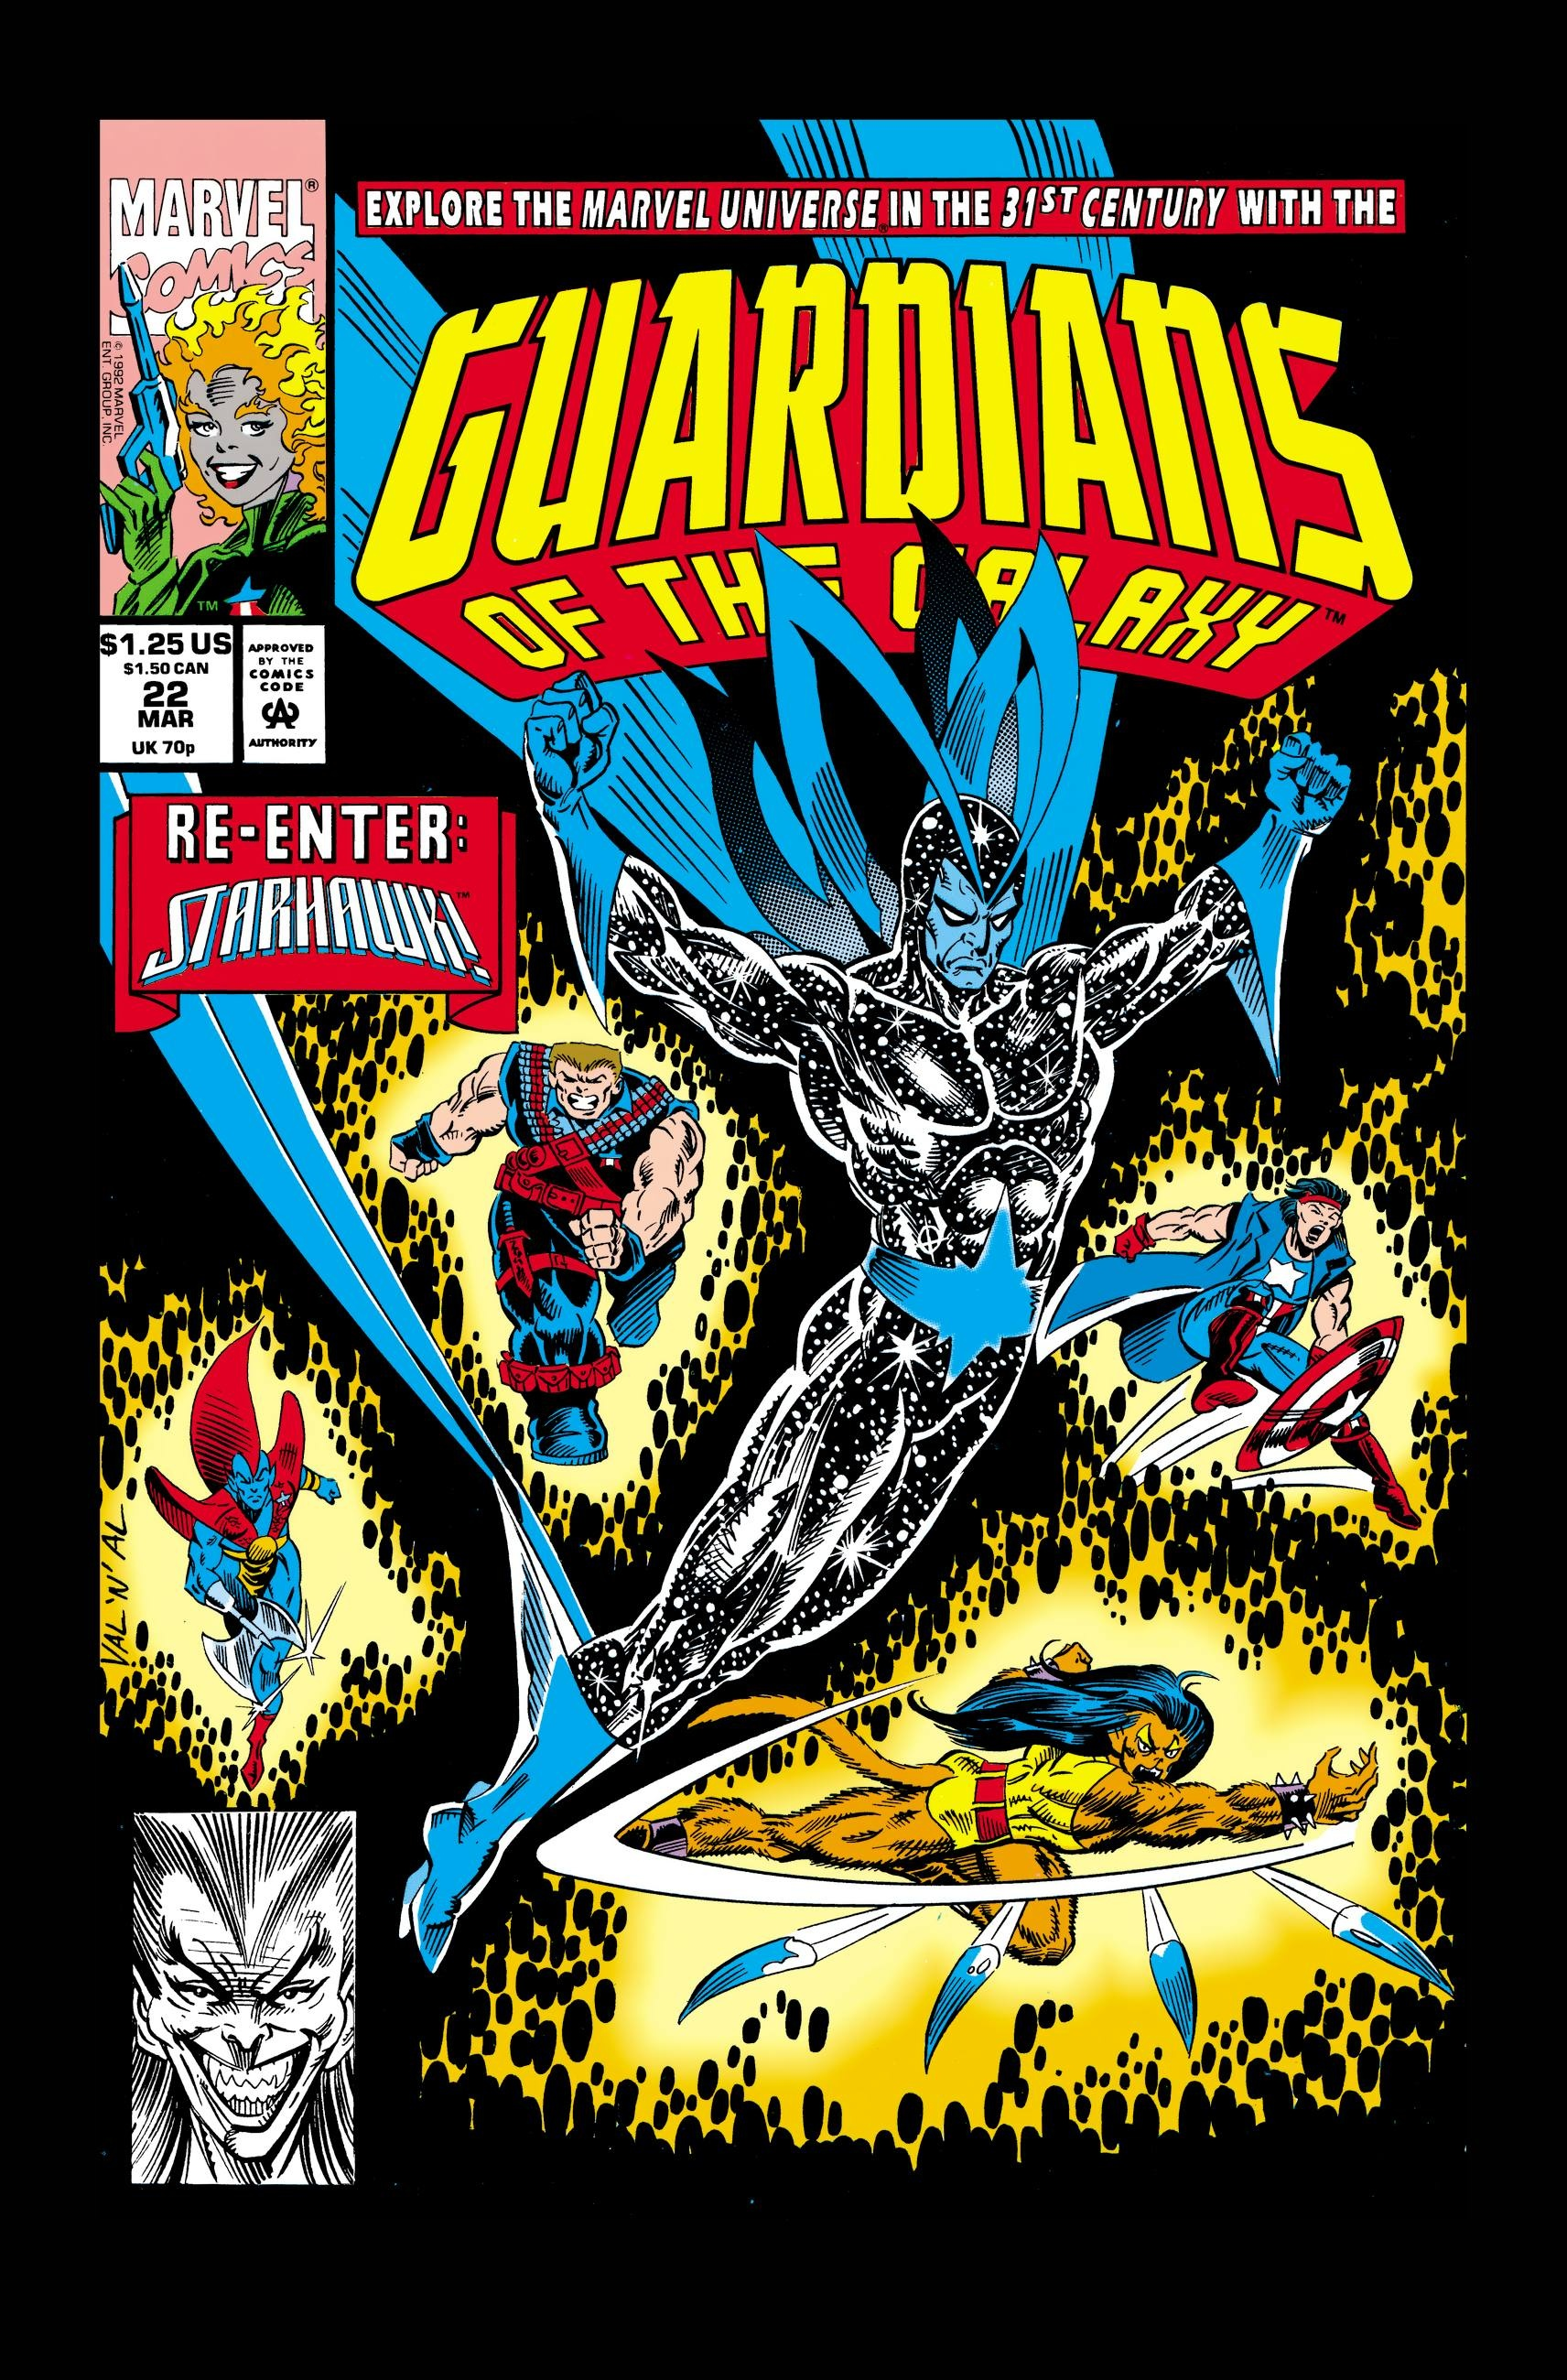 Guardians of the Galaxy by Jim Valentino Vol. 3 guardians of the galaxy new guard vol 1 emporer quill